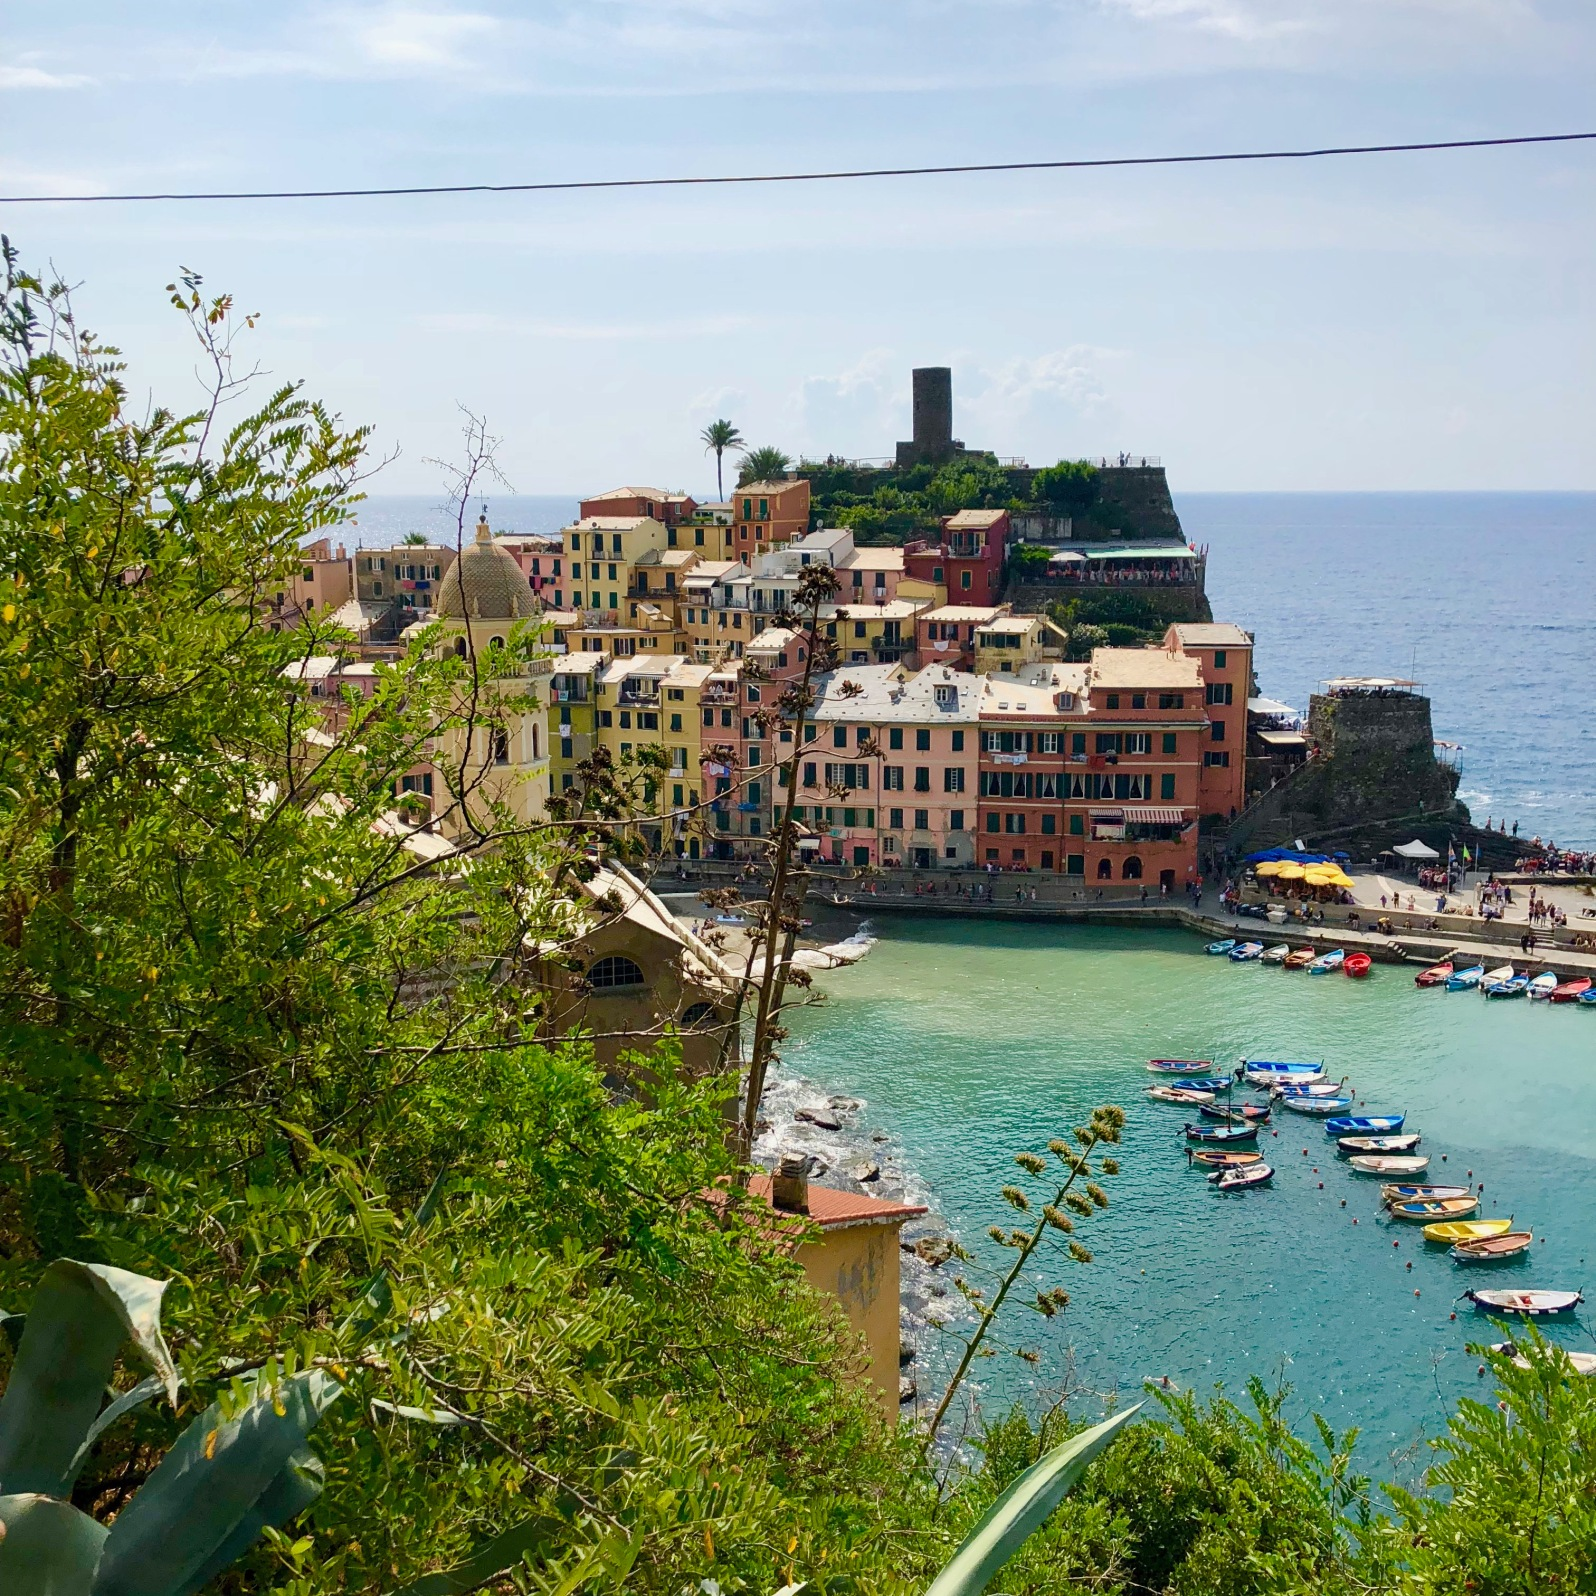 Looking back at Vernazza.